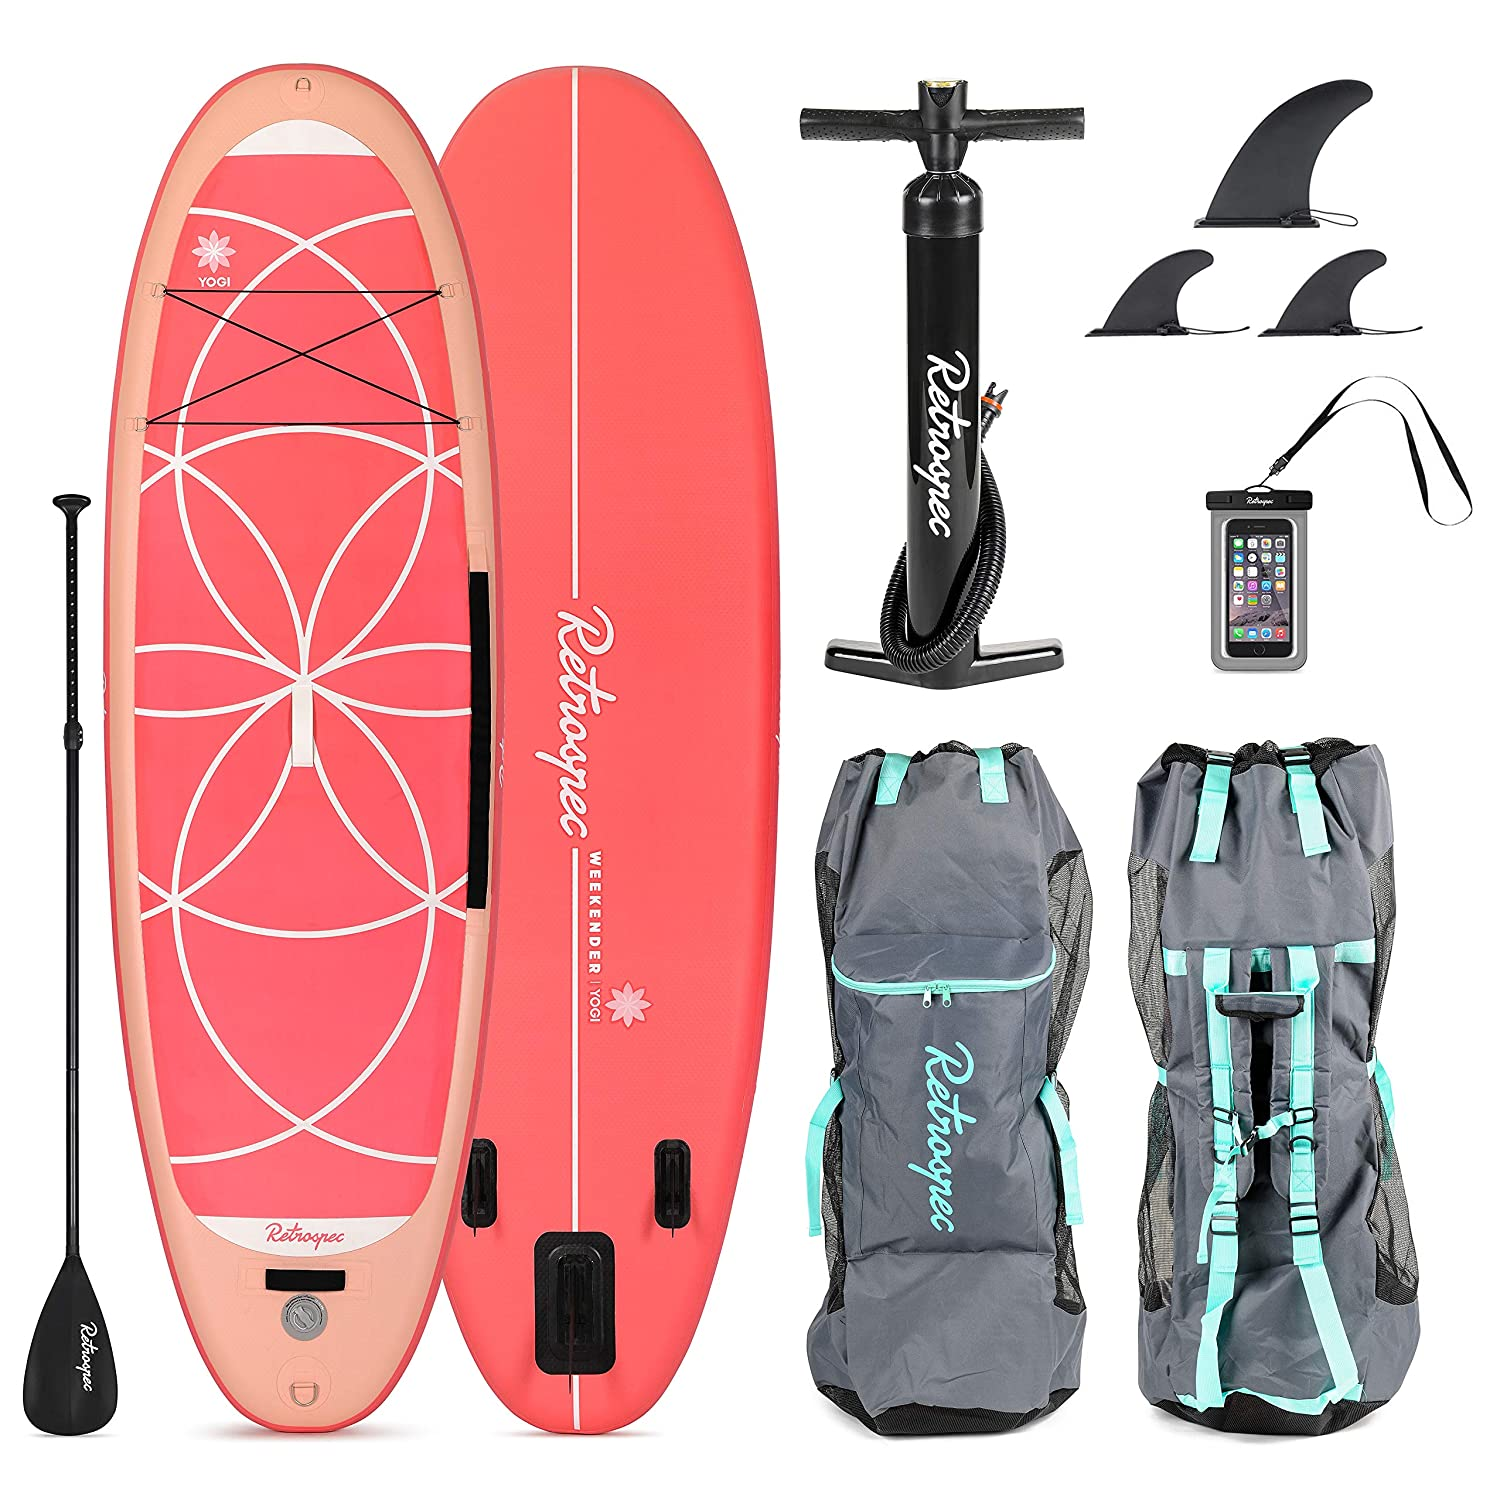 Retrospec Weekender-Yogi 10 Extra Wide Inflatable Stand Up Paddleboard Triple Layer Military Grade PVC iSUP Bundle w/ paddle board carrying case, ...